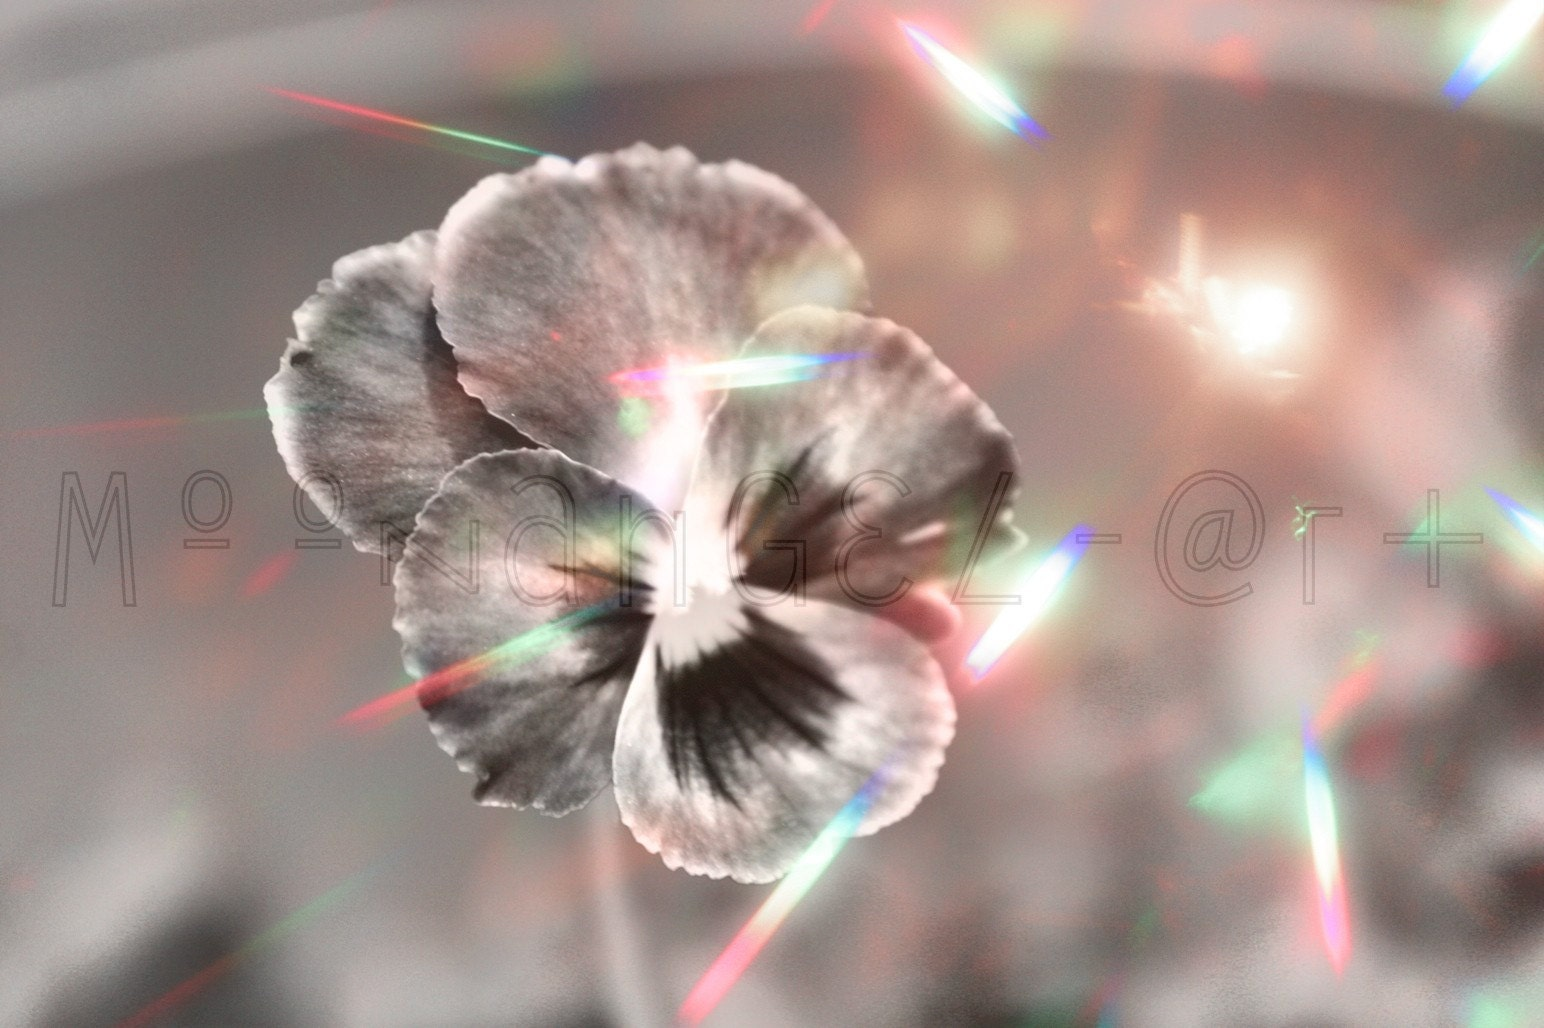 Pansy Spray 5x7 Inch Archival Print.  Black and white, with hints of pink and rainbow colours. Light bursts forth from a promising bloom